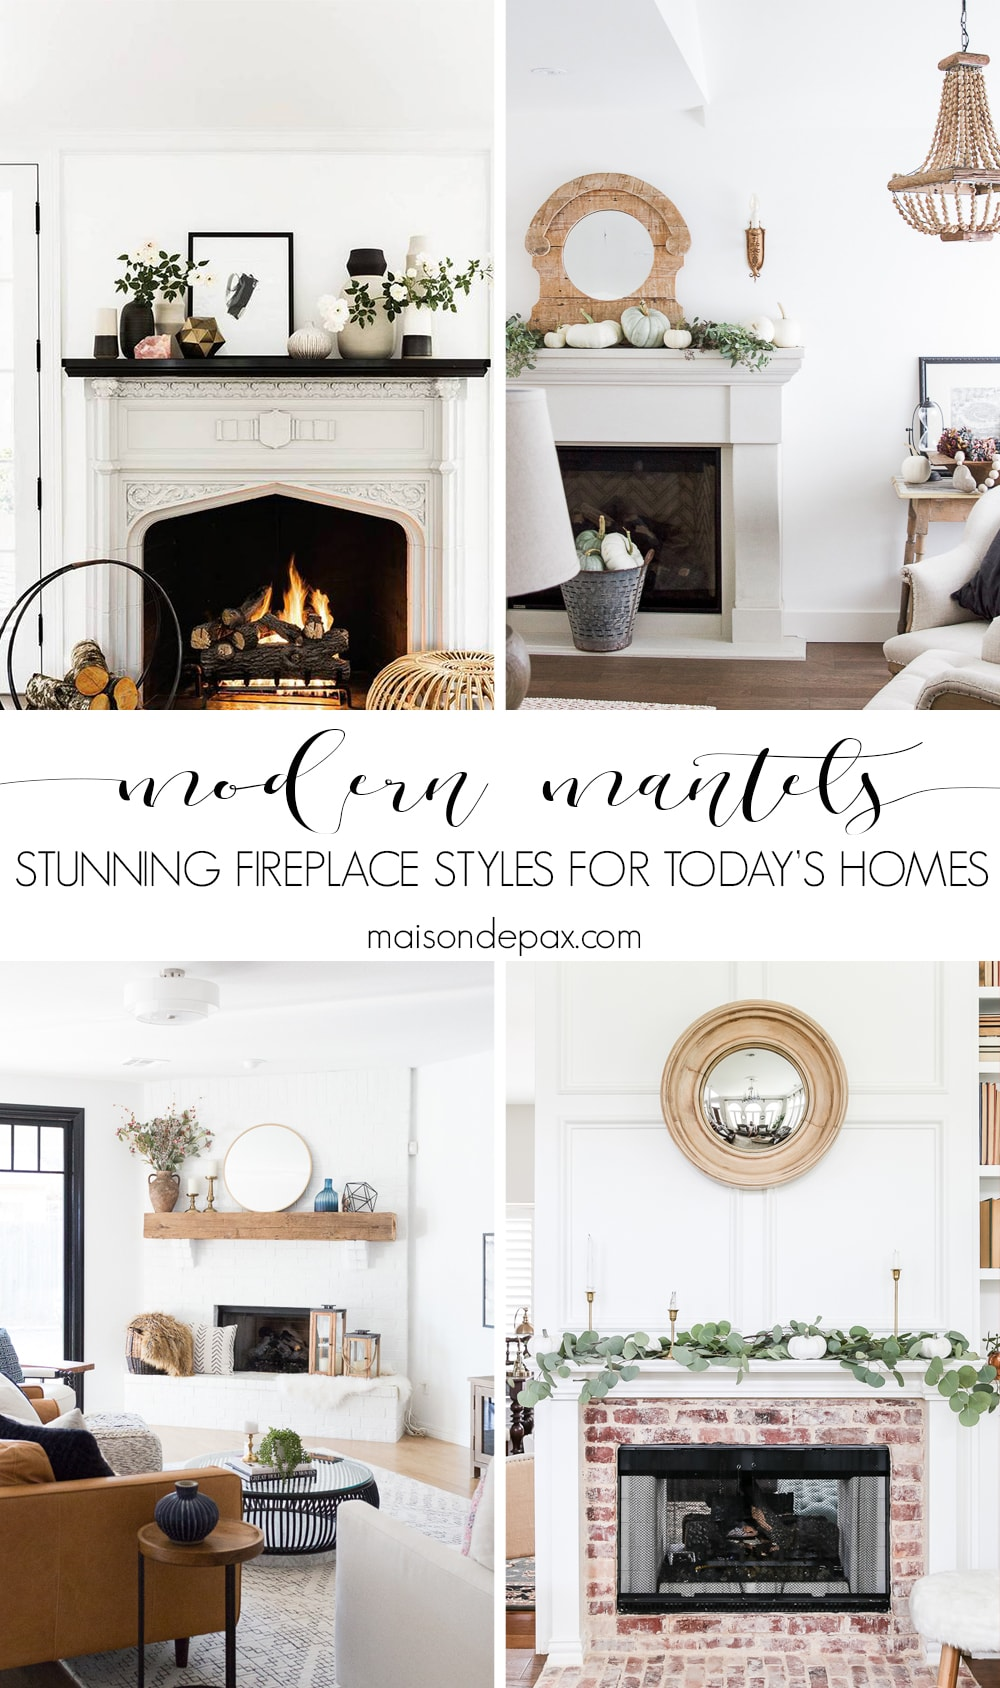 Looking for fireplace ideas to update an outdated fireplace or design a new one?  Trying to find the perfect mantel inspiration for your fireplace?  Here are five gorgeous fireplace and mantel options: painted brick fireplaces, precast fireplace surrounds, reclaimed wood mantels, white millwork mantels, and even faux fireplaces made with antique mantels. #fireplaceideas #fireplaceinspiration #mantel #brickfireplace #precastfireplace #modernfireplace